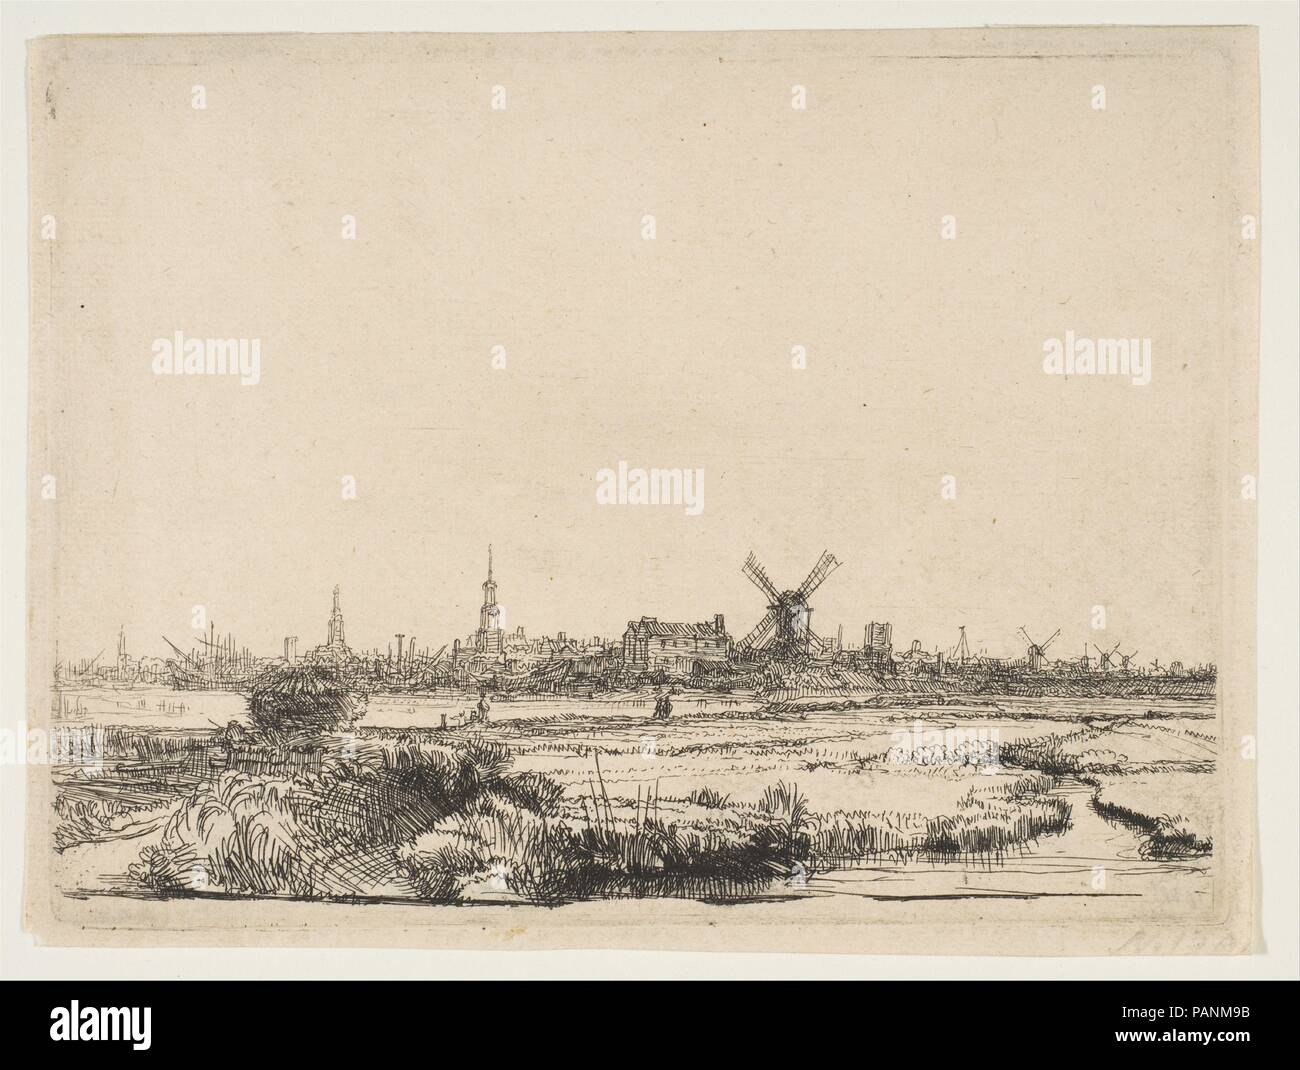 View of Amsterdam from the Northwest. Artist: Rembrandt (Rembrandt van Rijn) (Dutch, Leiden 1606-1669 Amsterdam). Dimensions: Plate: 4 7/16 x 6 in. (11.2 x 15.2 cm)  Sheet: 4 3/4 x 6 1/4 in. (12 x 15.8 cm). Date: ca. 1640. Museum: Metropolitan Museum of Art, New York, USA. - Stock Image